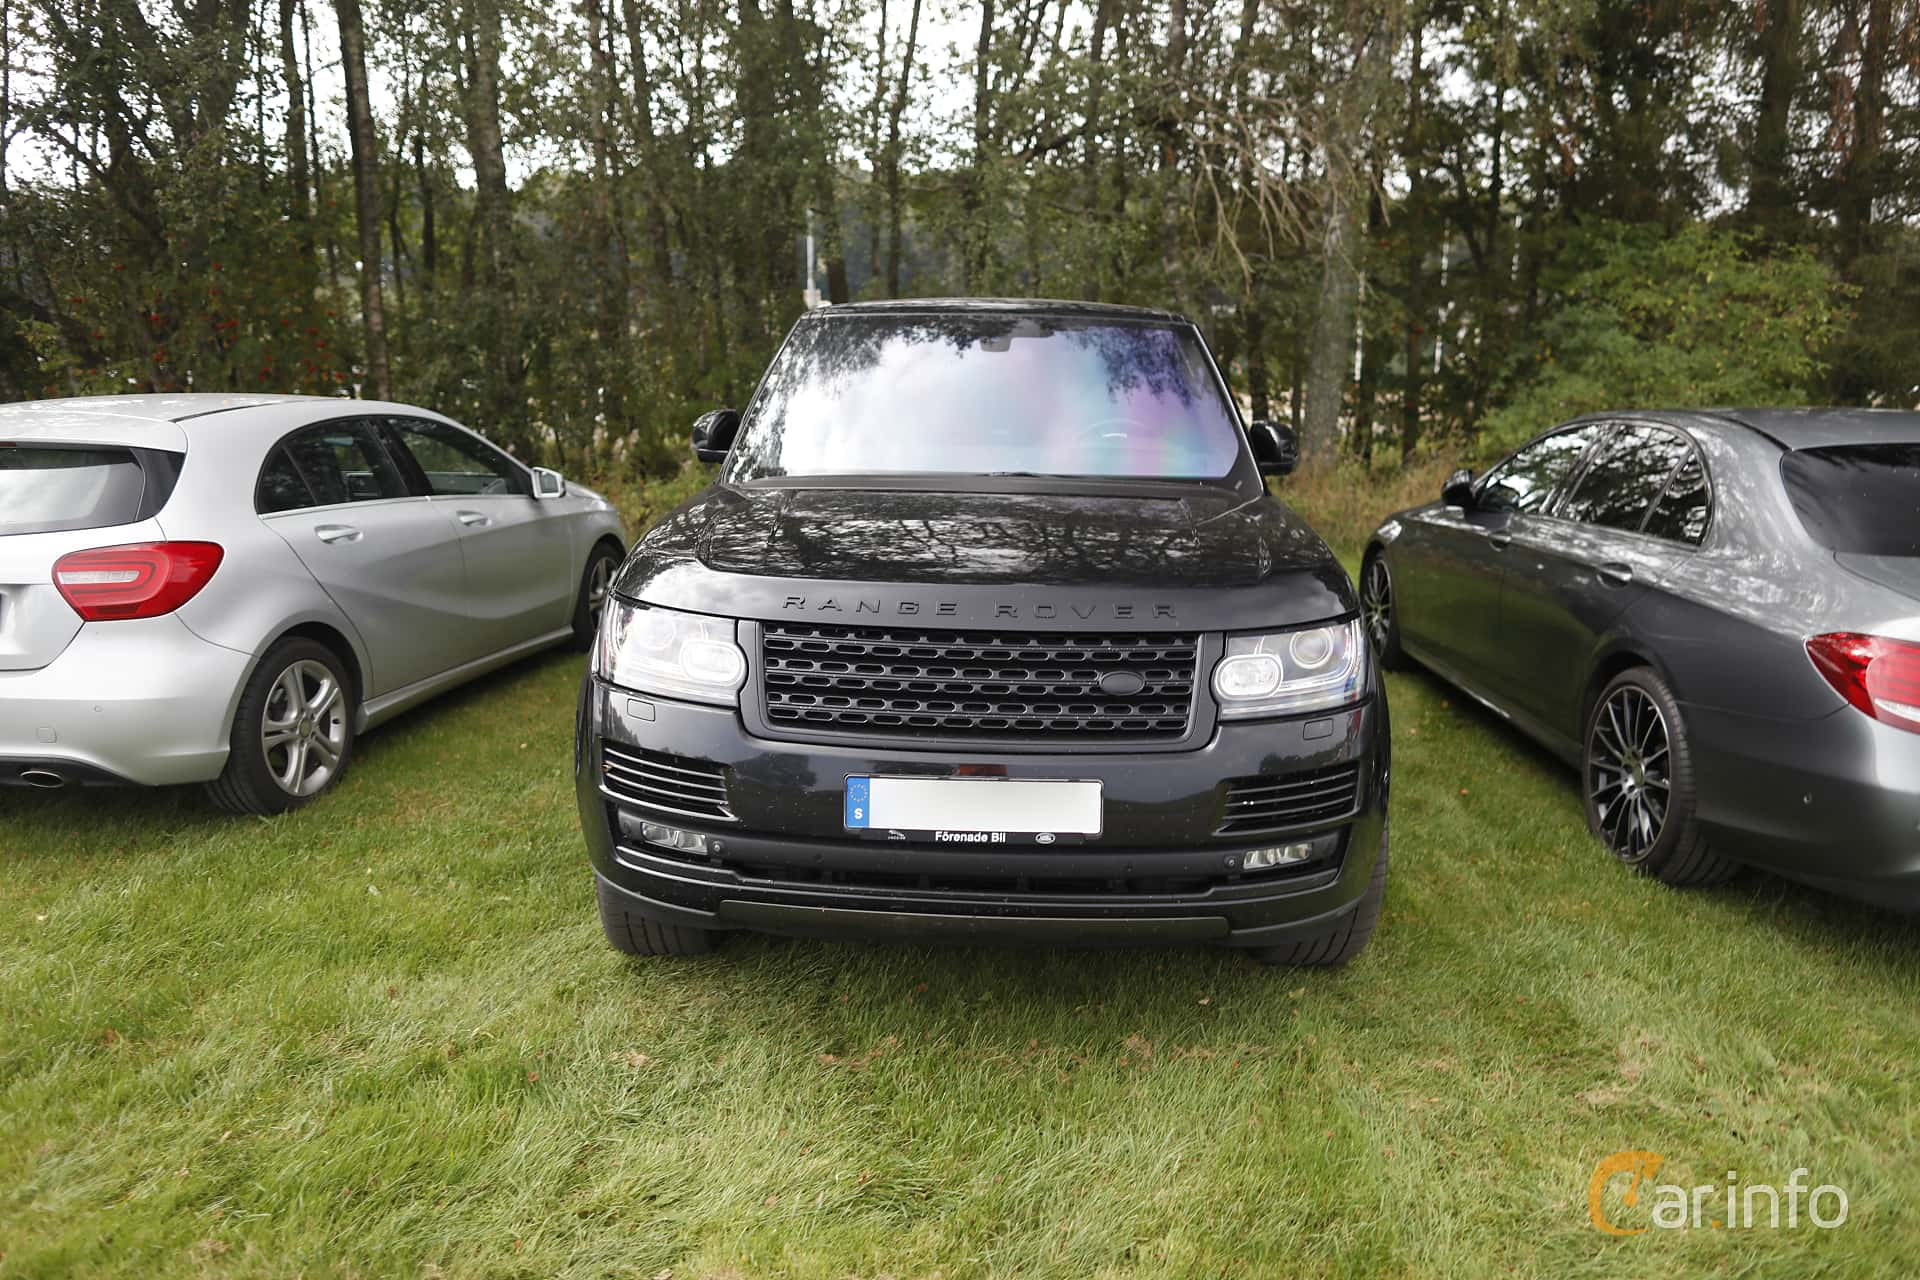 Front  of Land Rover Range Rover 4.4 SDV8 4WD Automatic, 340ps, 2014 at Autoropa Racing day Knutstorp 2019